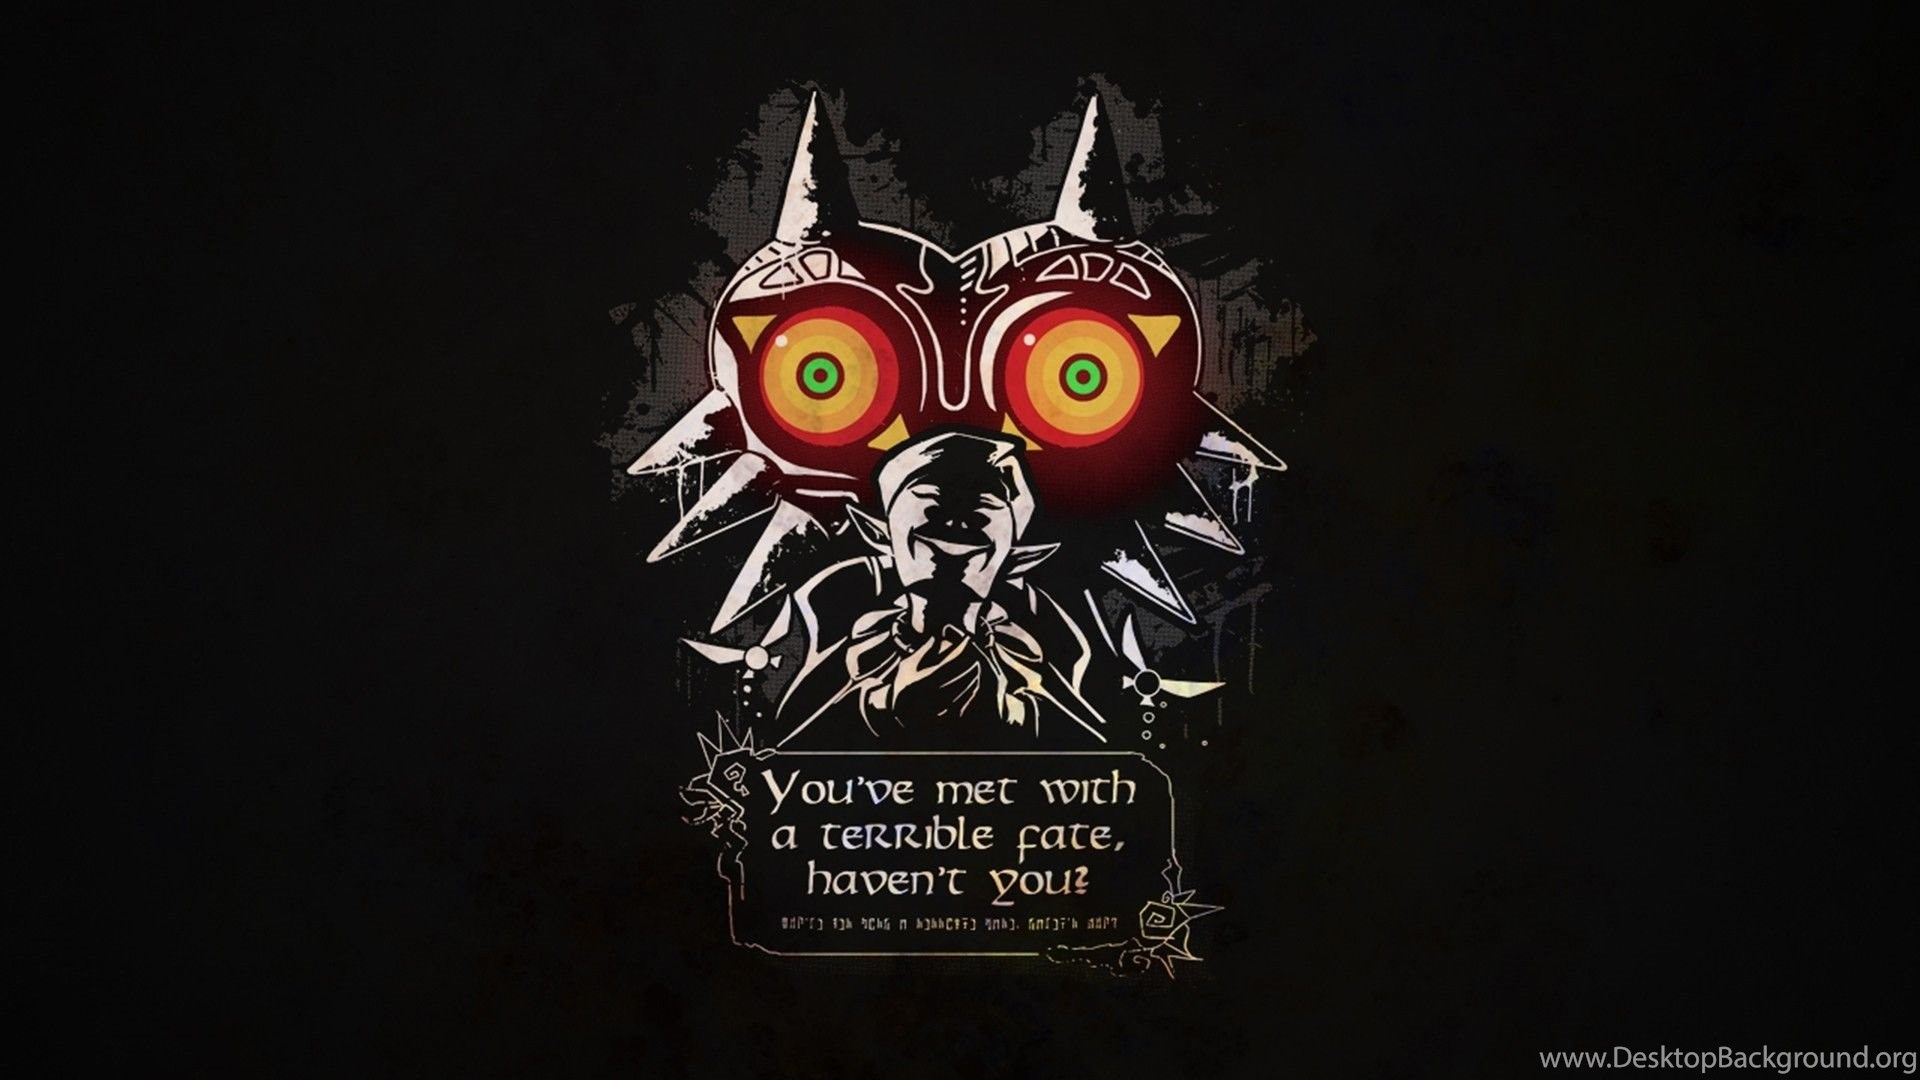 Majora S Mask Wallpapers Hd Invitation Templates Desktop Background